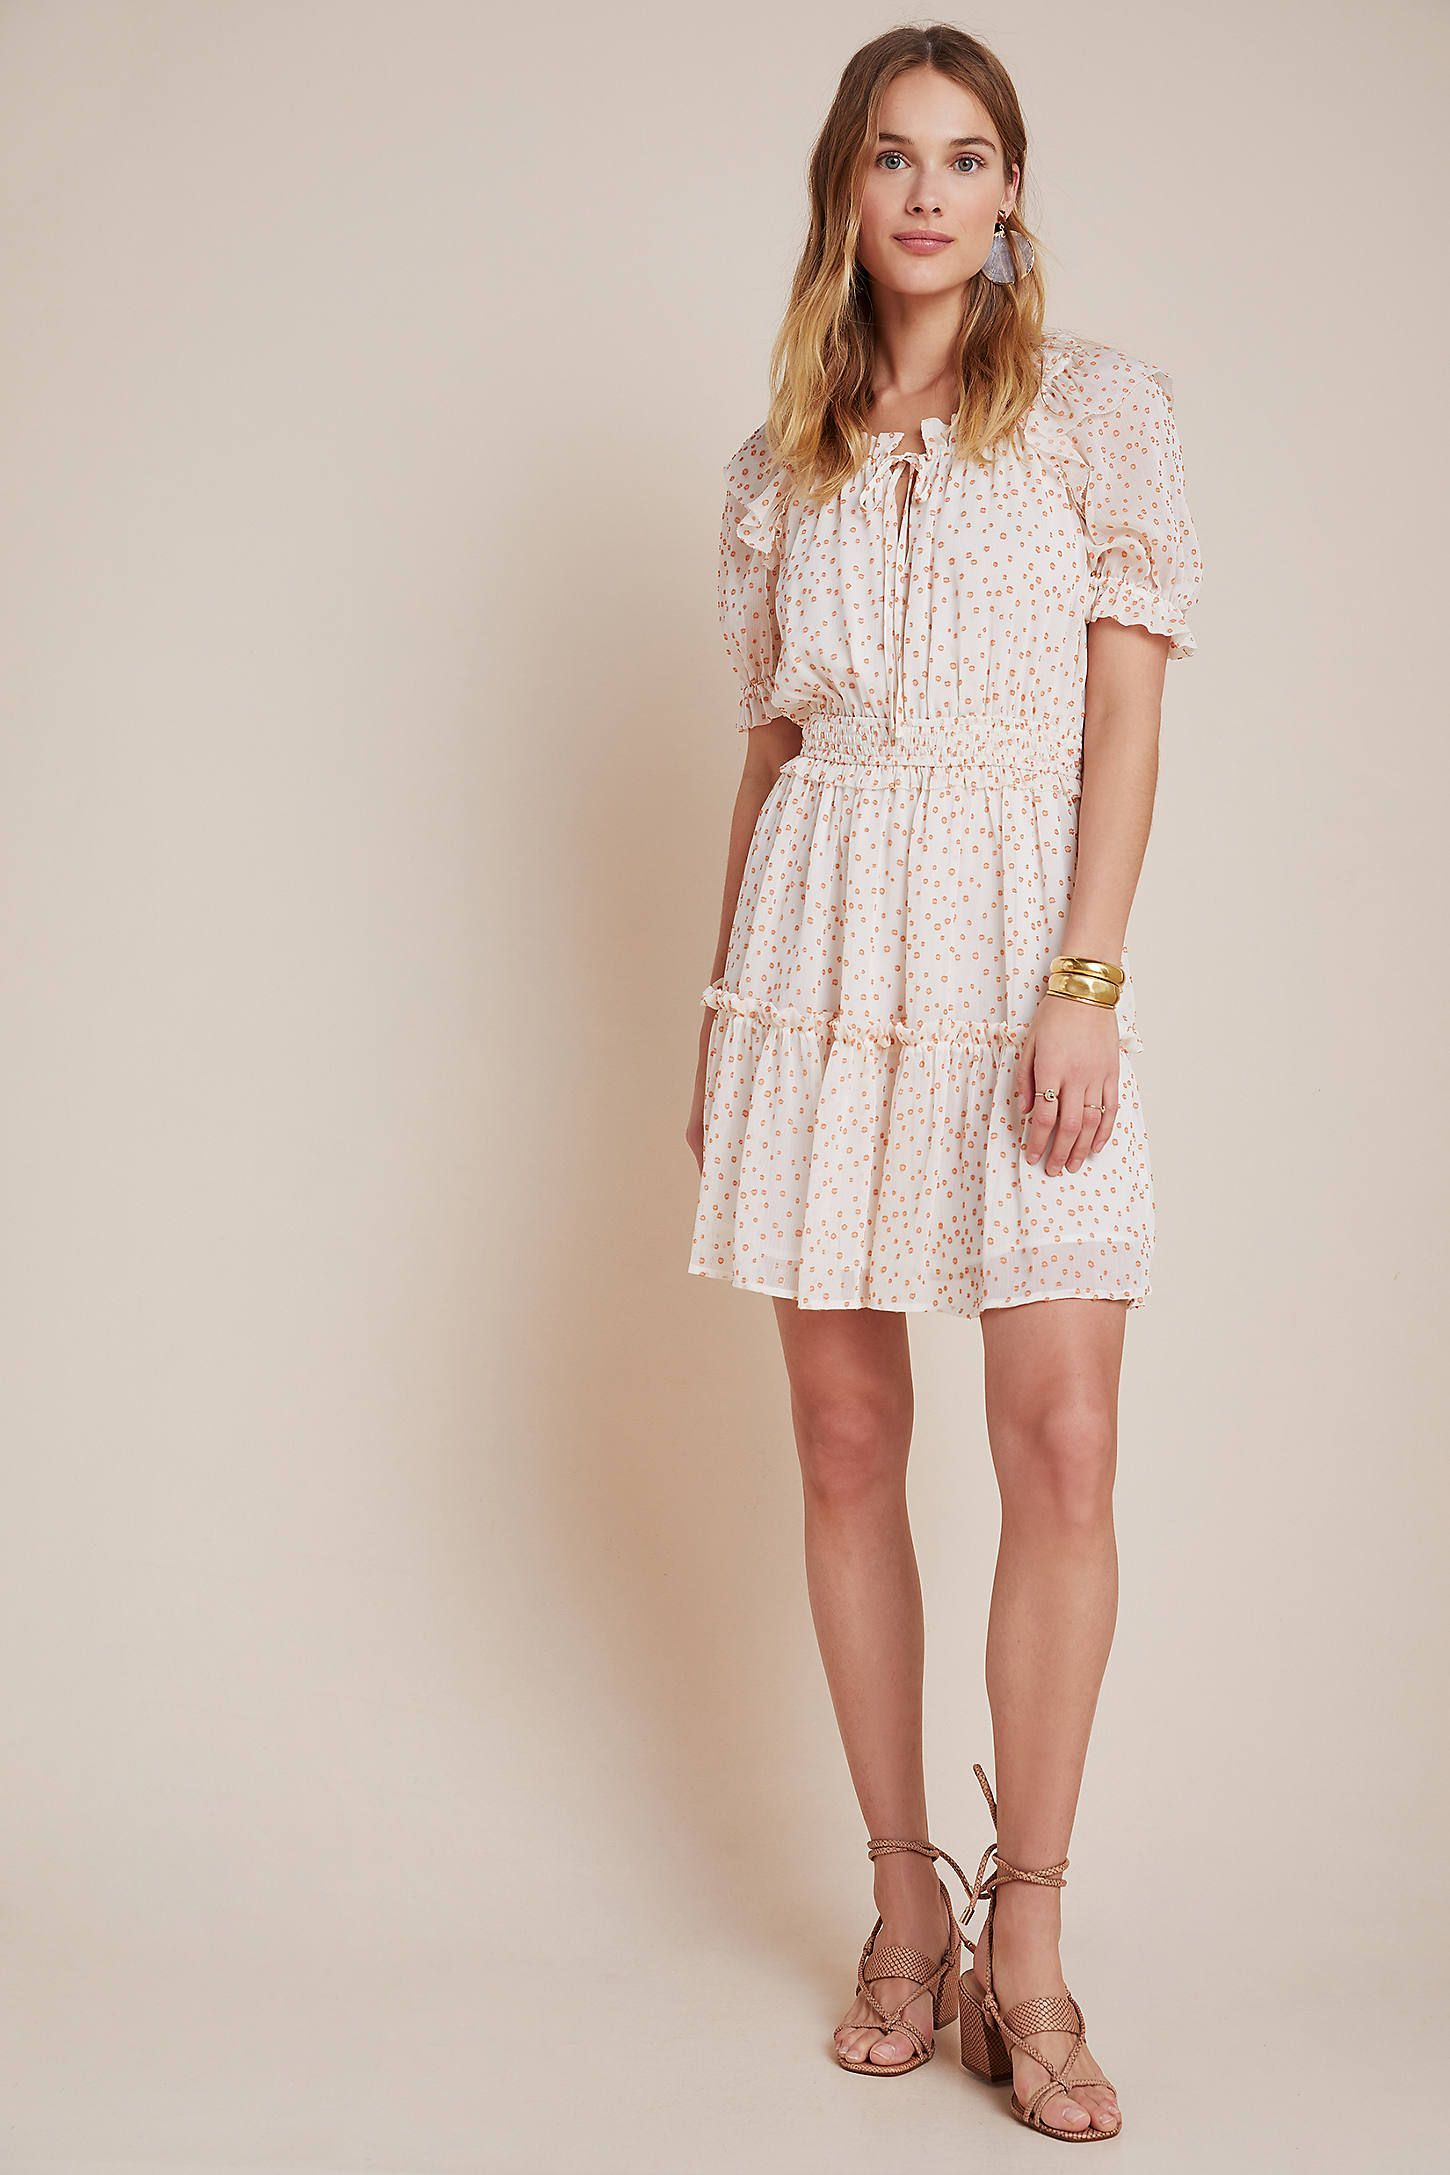 Dawna Tiered Mini Dress By Current Air In White Size Xs Women S Dresses At Anthropologie Mini Dress Unique Dresses Online Dress Shopping Sites [ 2175 x 1450 Pixel ]